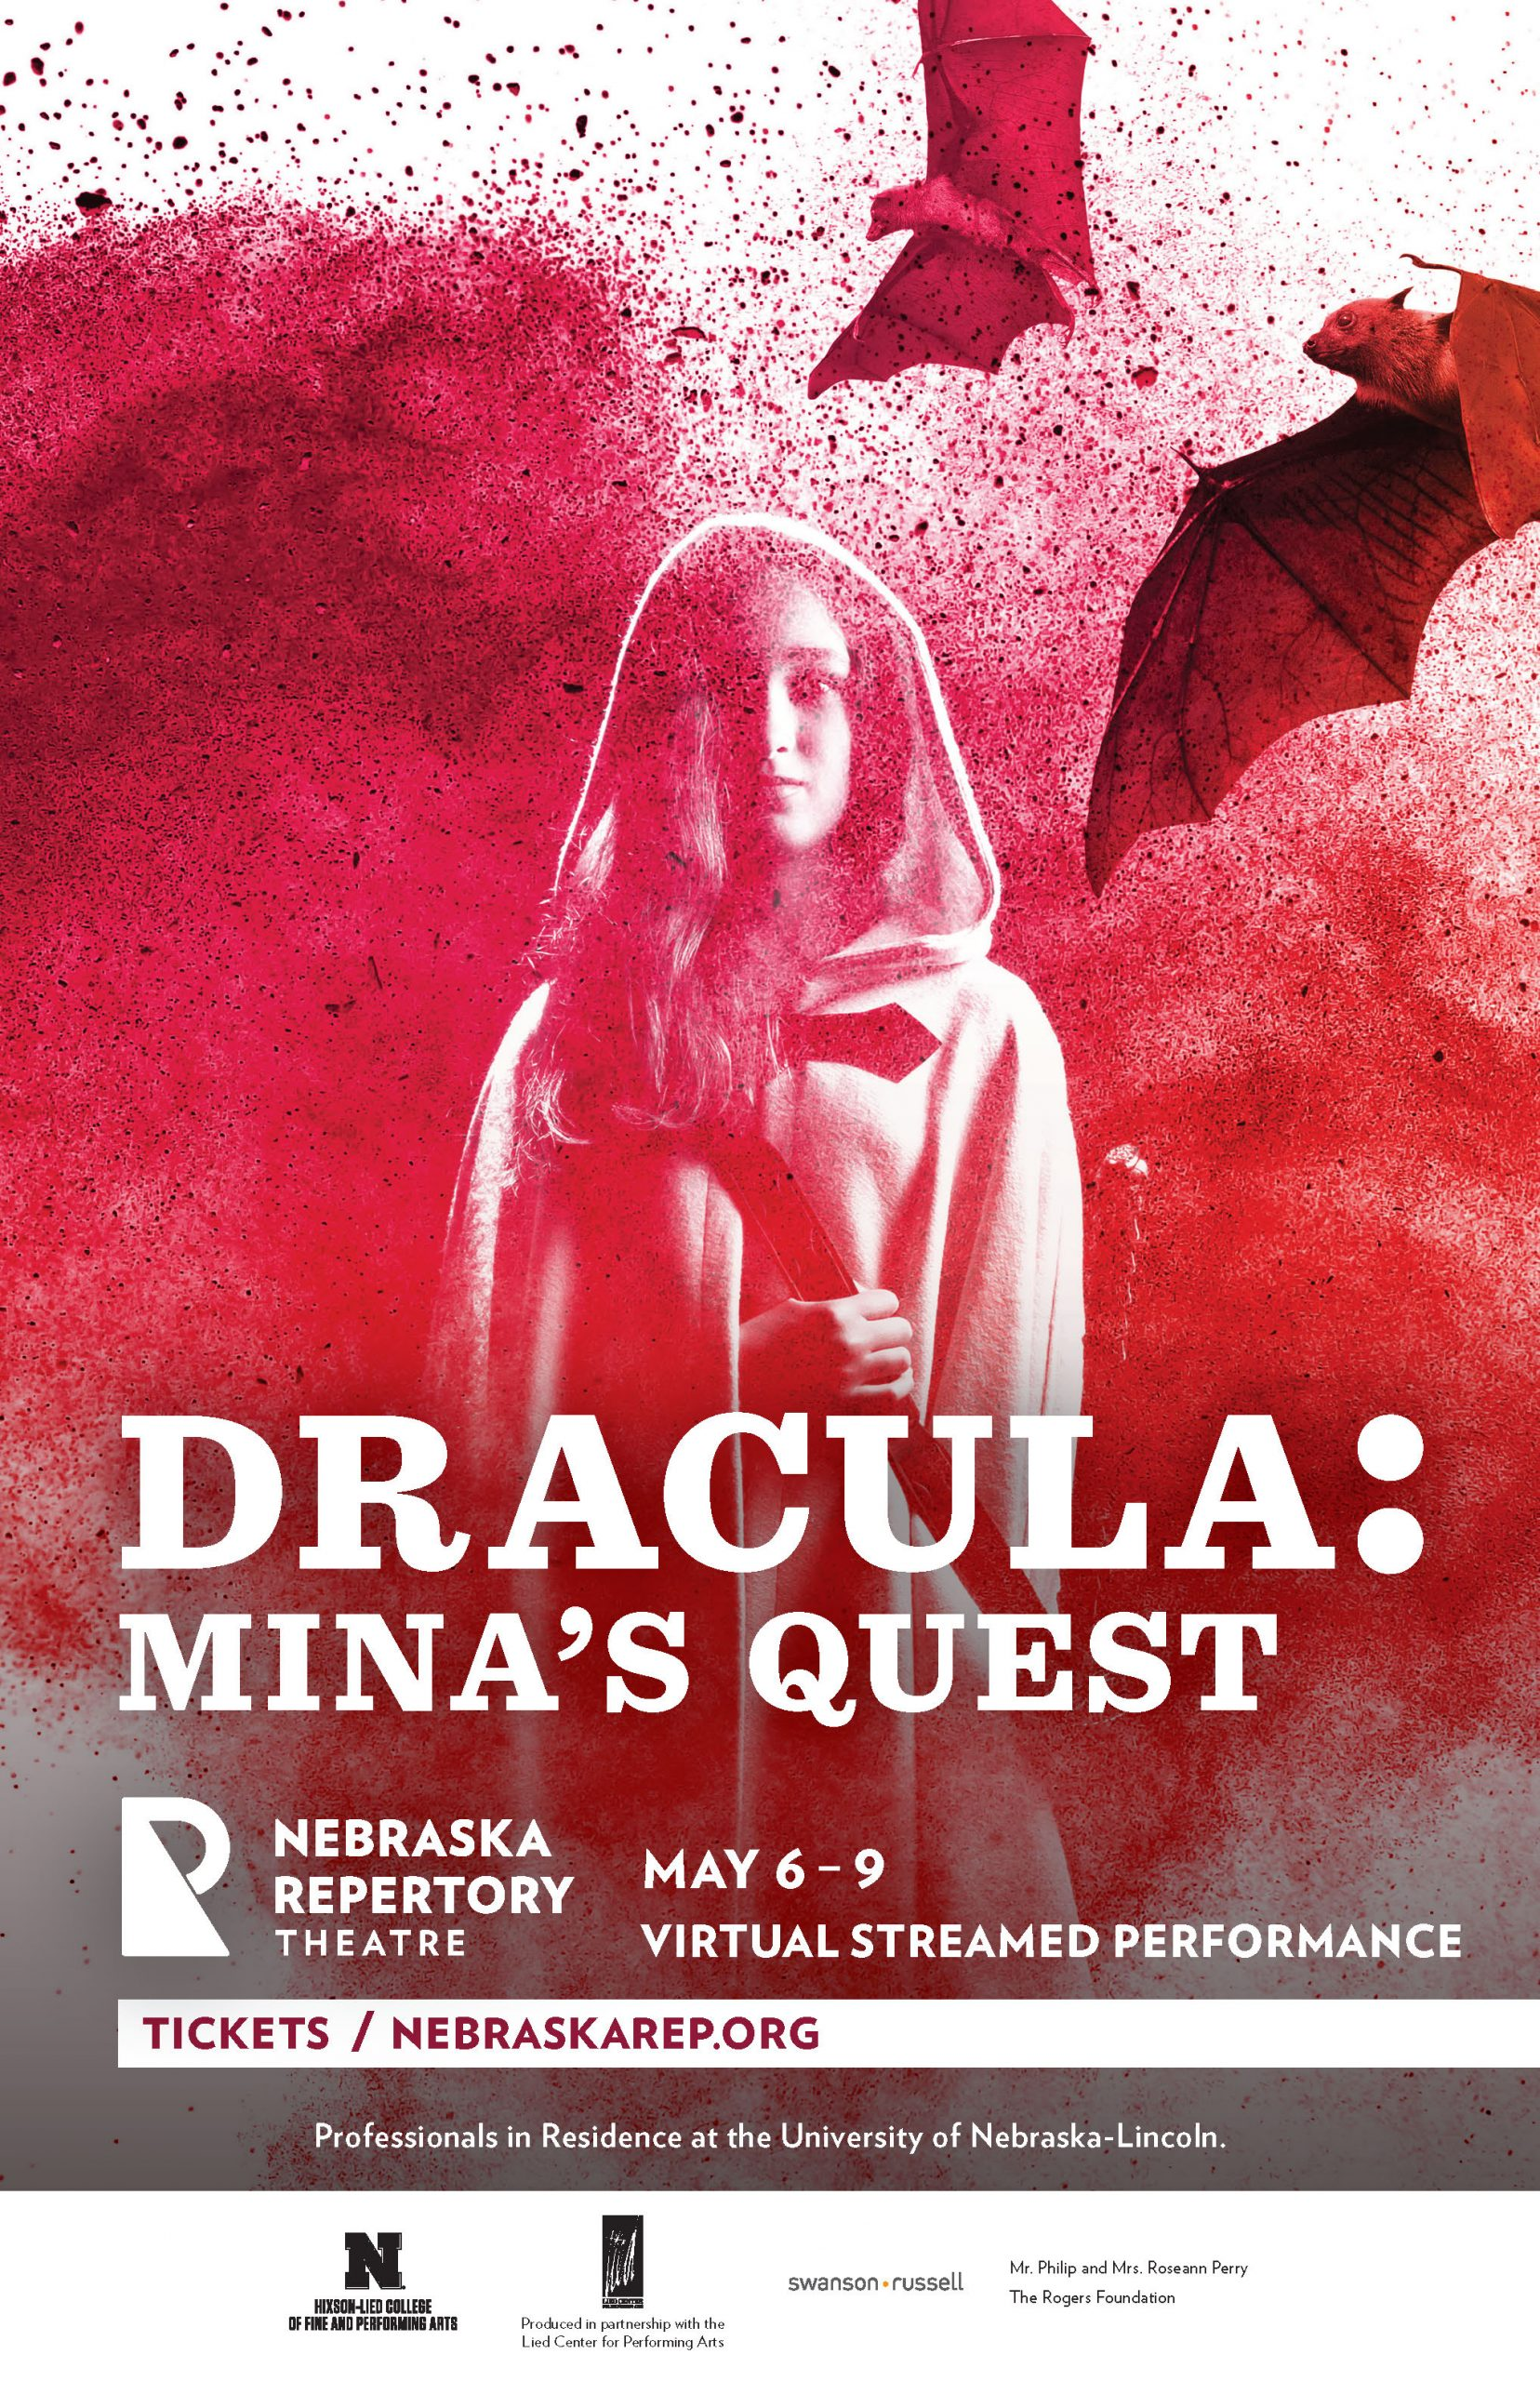 A poster for a play called 'Dracula, Mina's Quest'. A girl in a hooded cape stands in front of a dramatic explosion of powder, as bats fly overhead.